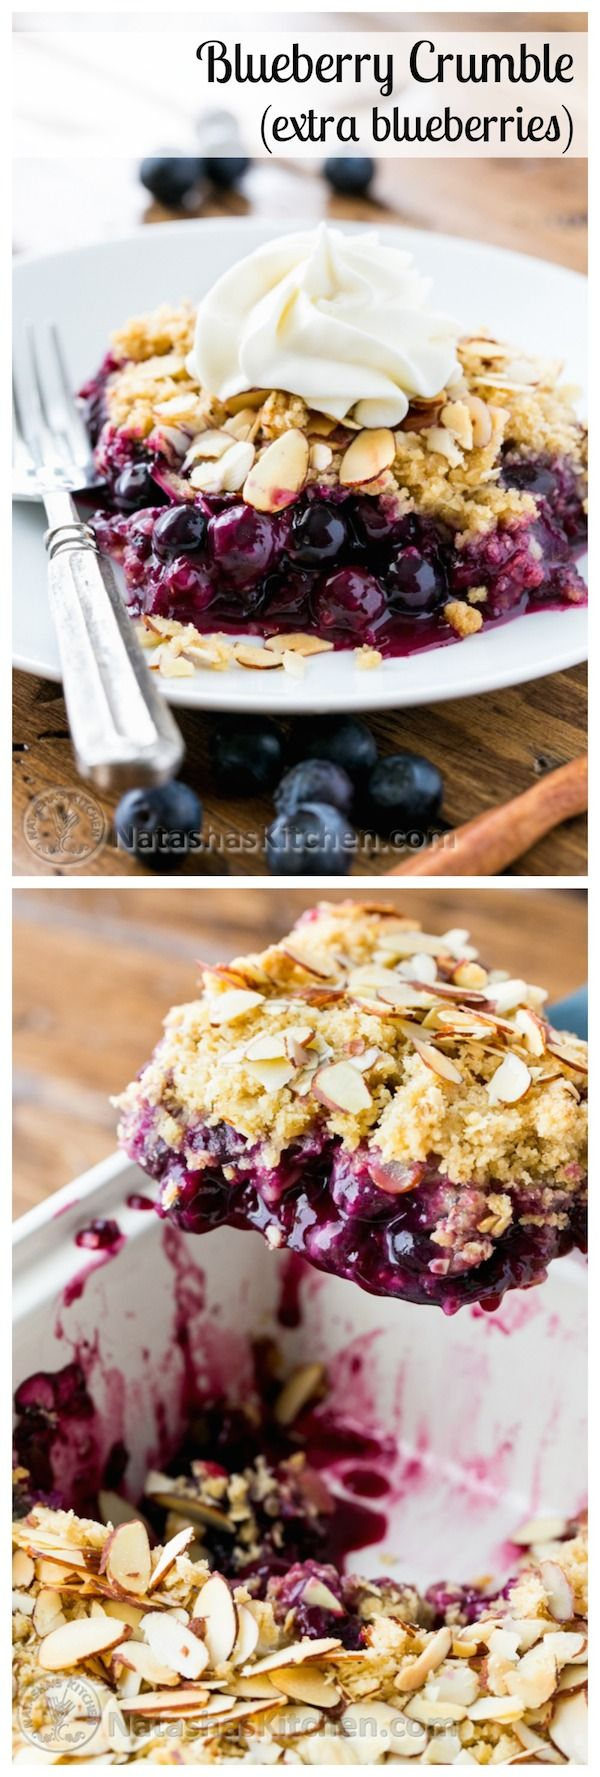 This blueberry crumble is a must-try recipe! Easy to make and absolutely delicious with layers of plump blueberries from @natashaskitchen #sponsored by #lecreuset